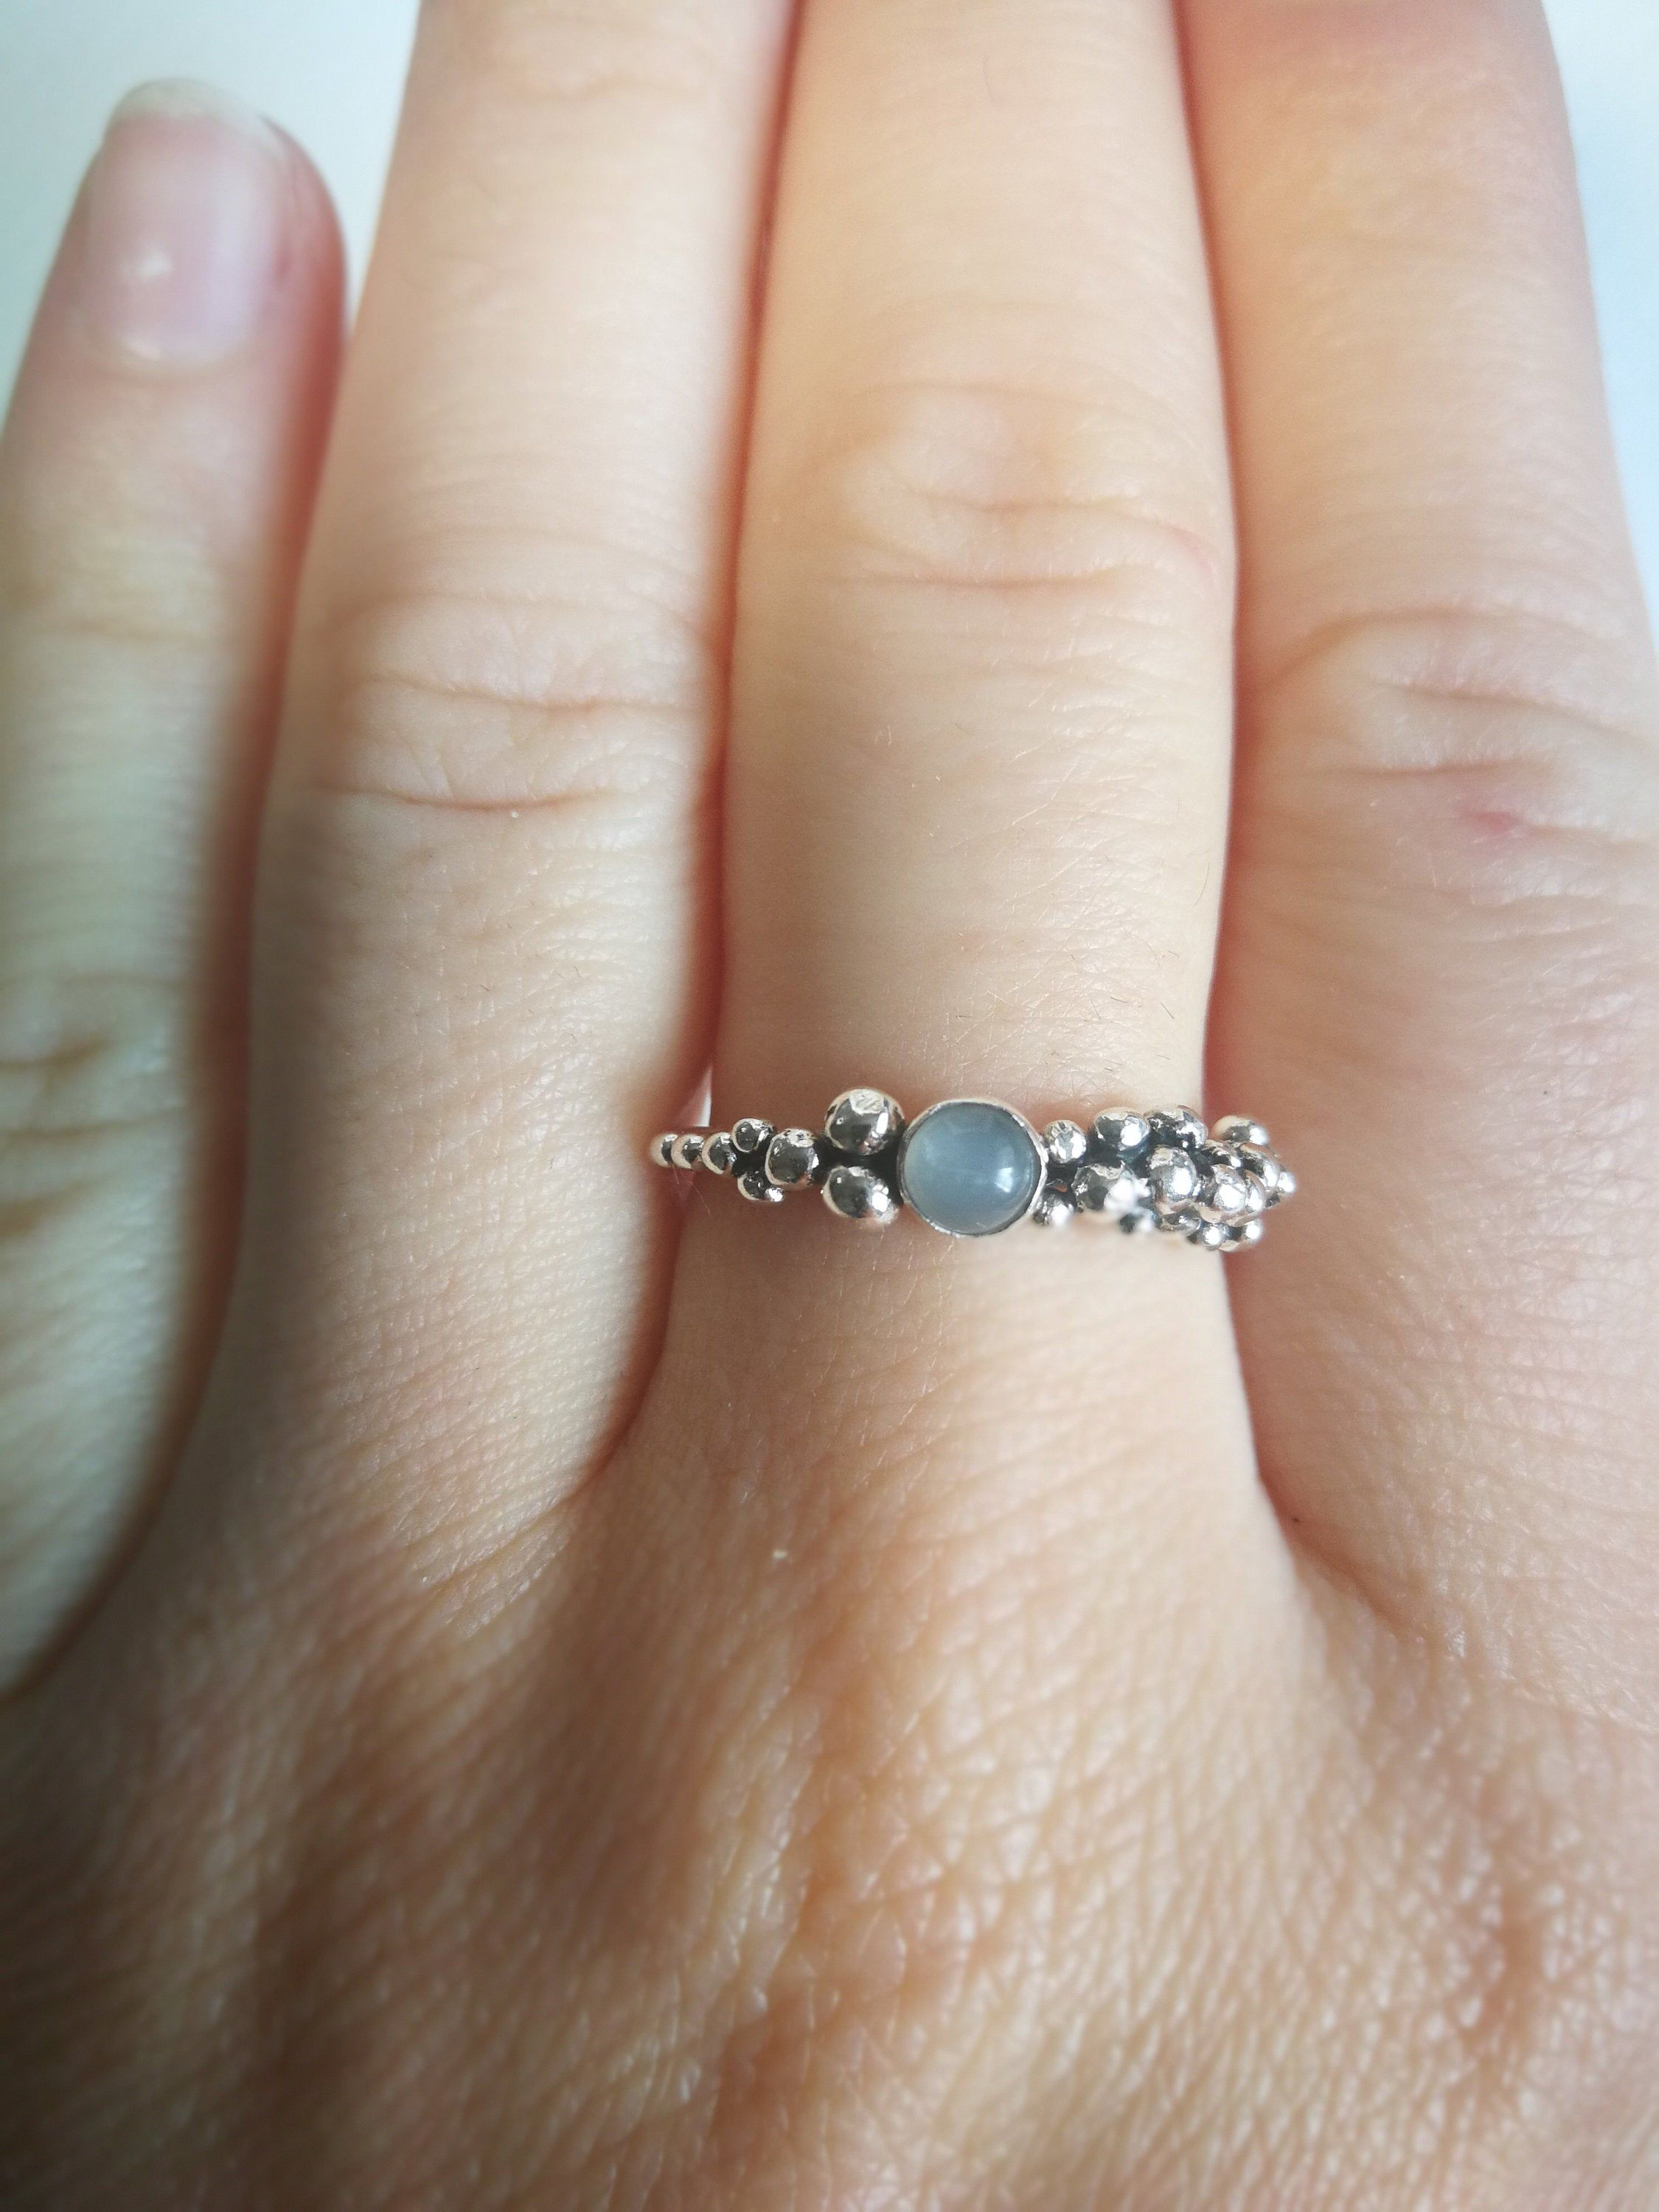 White topaz wedding ring Engagement ring with Topaz gemstone Silver engagement ring with a unique design Granulation and melted texture